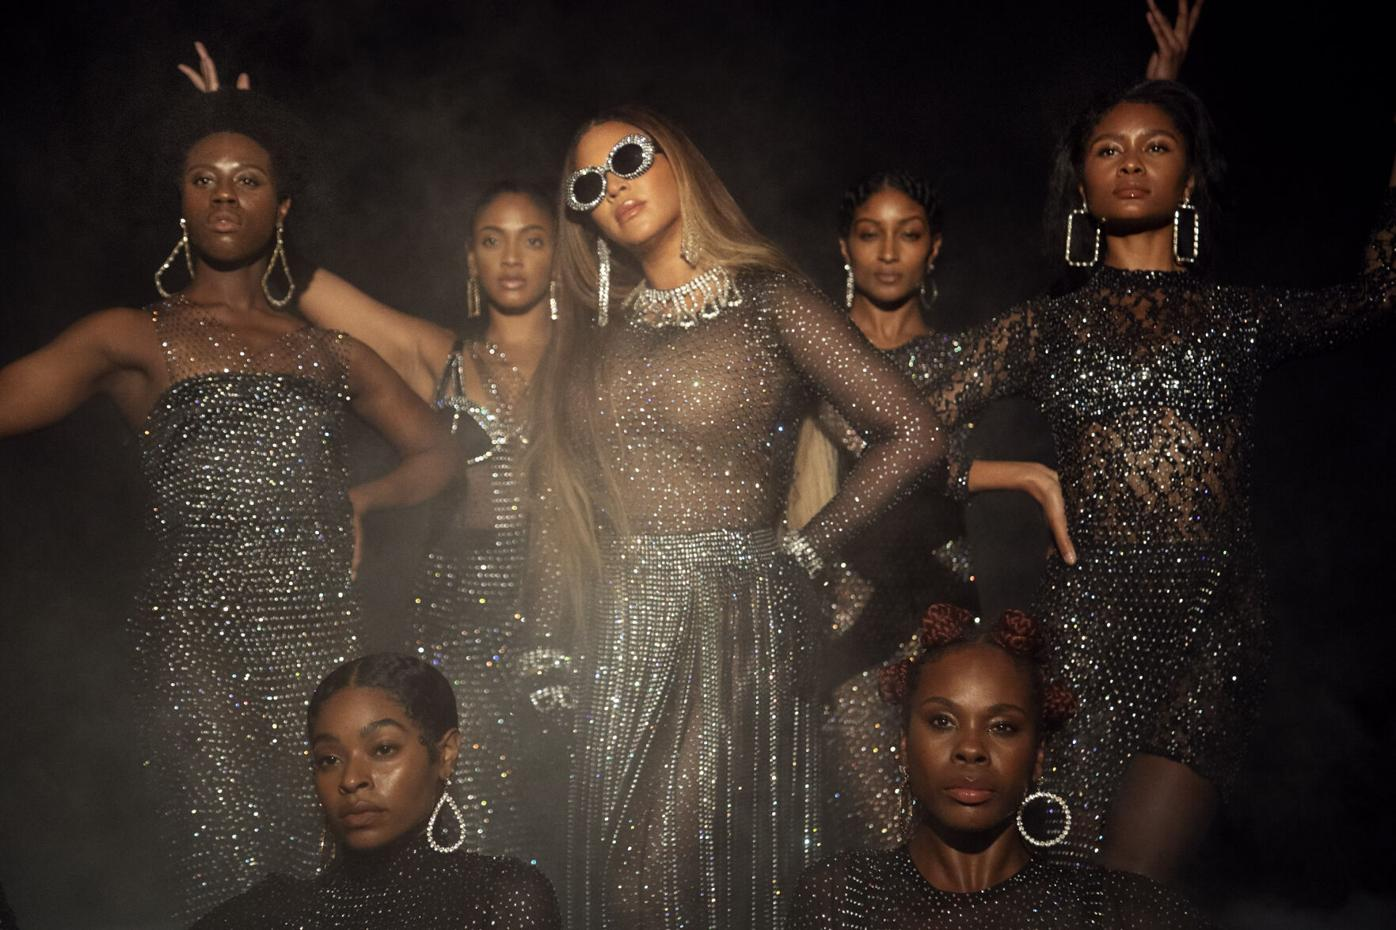 Beyoncé's 'Black Is King' is supreme Black art